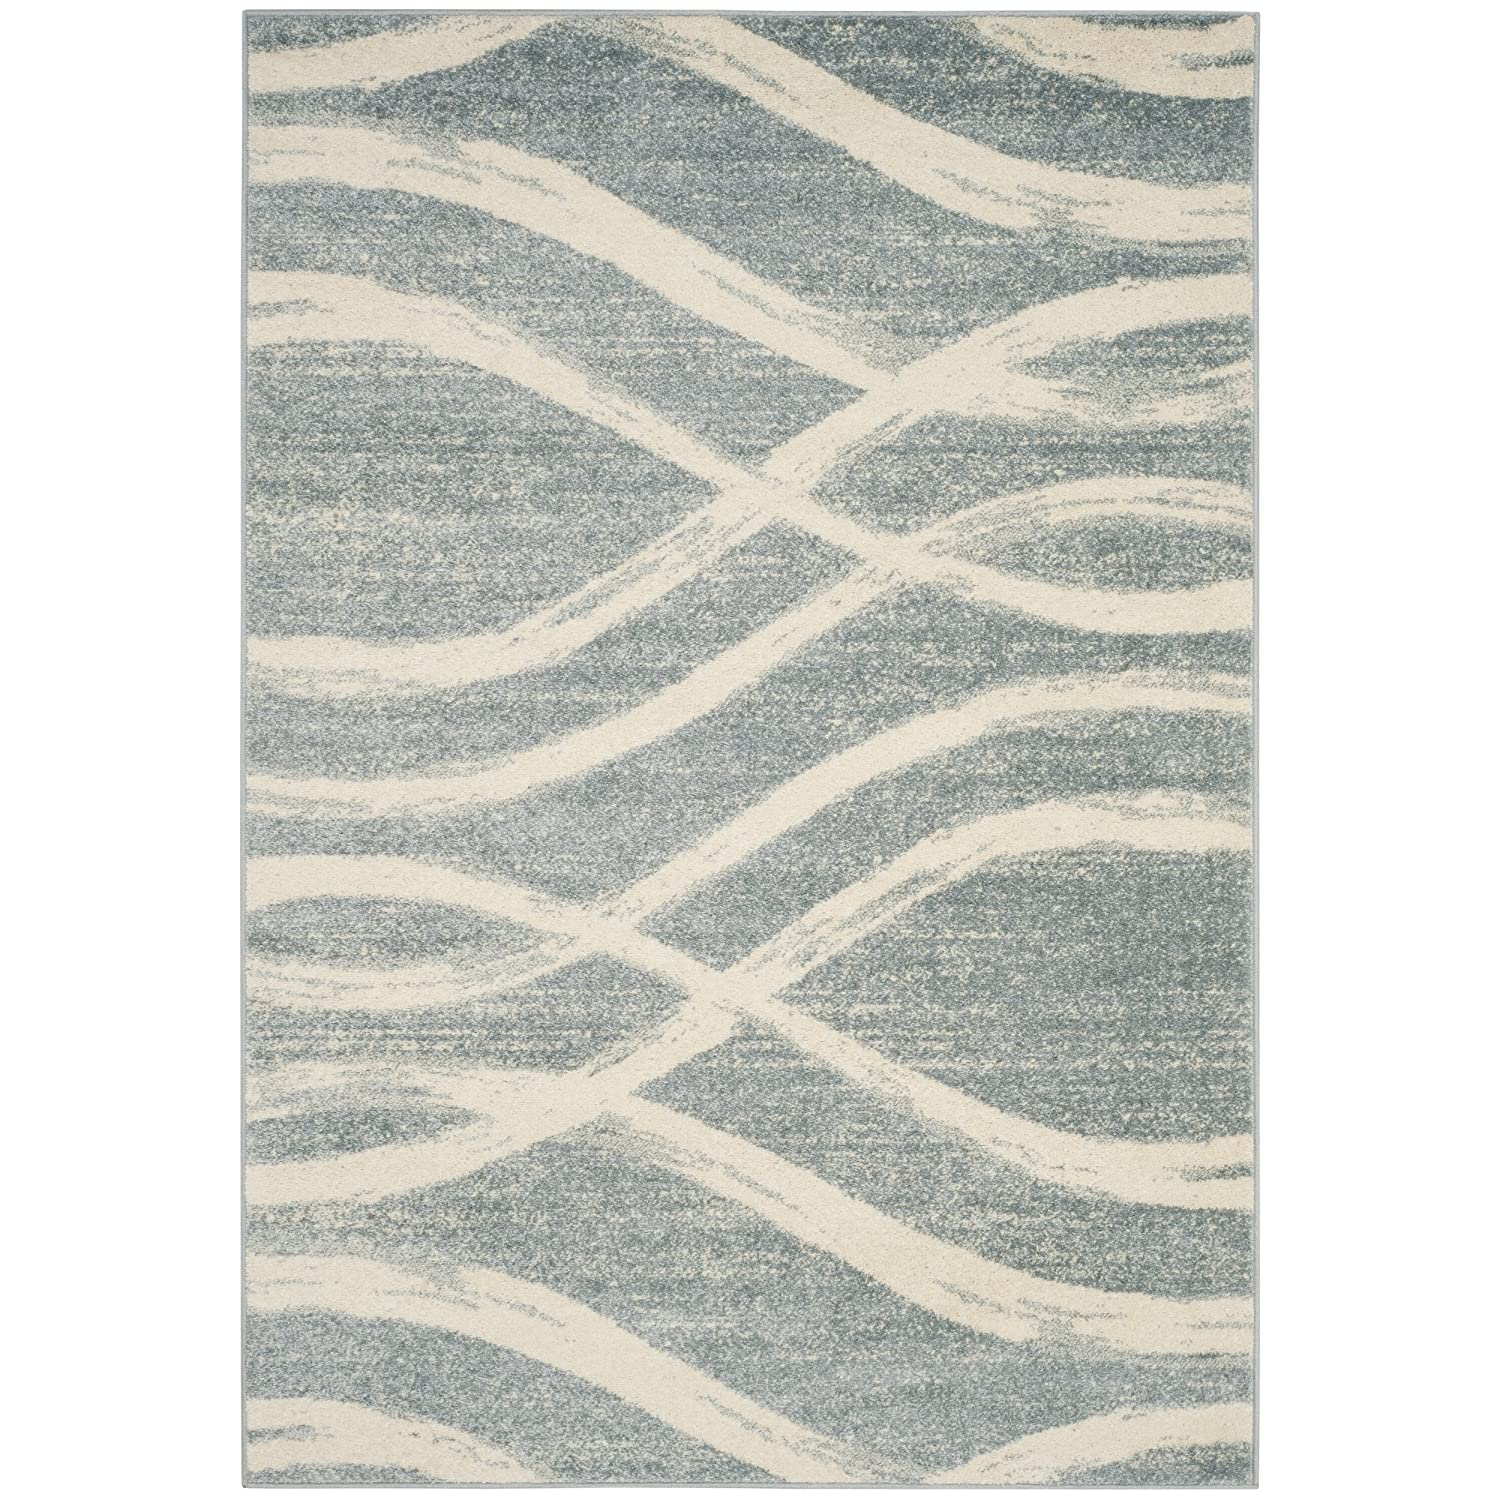 Safavieh Amsterdam Collection AMS106C Modern Abstract Ivory and Light Blue Runner (2'3